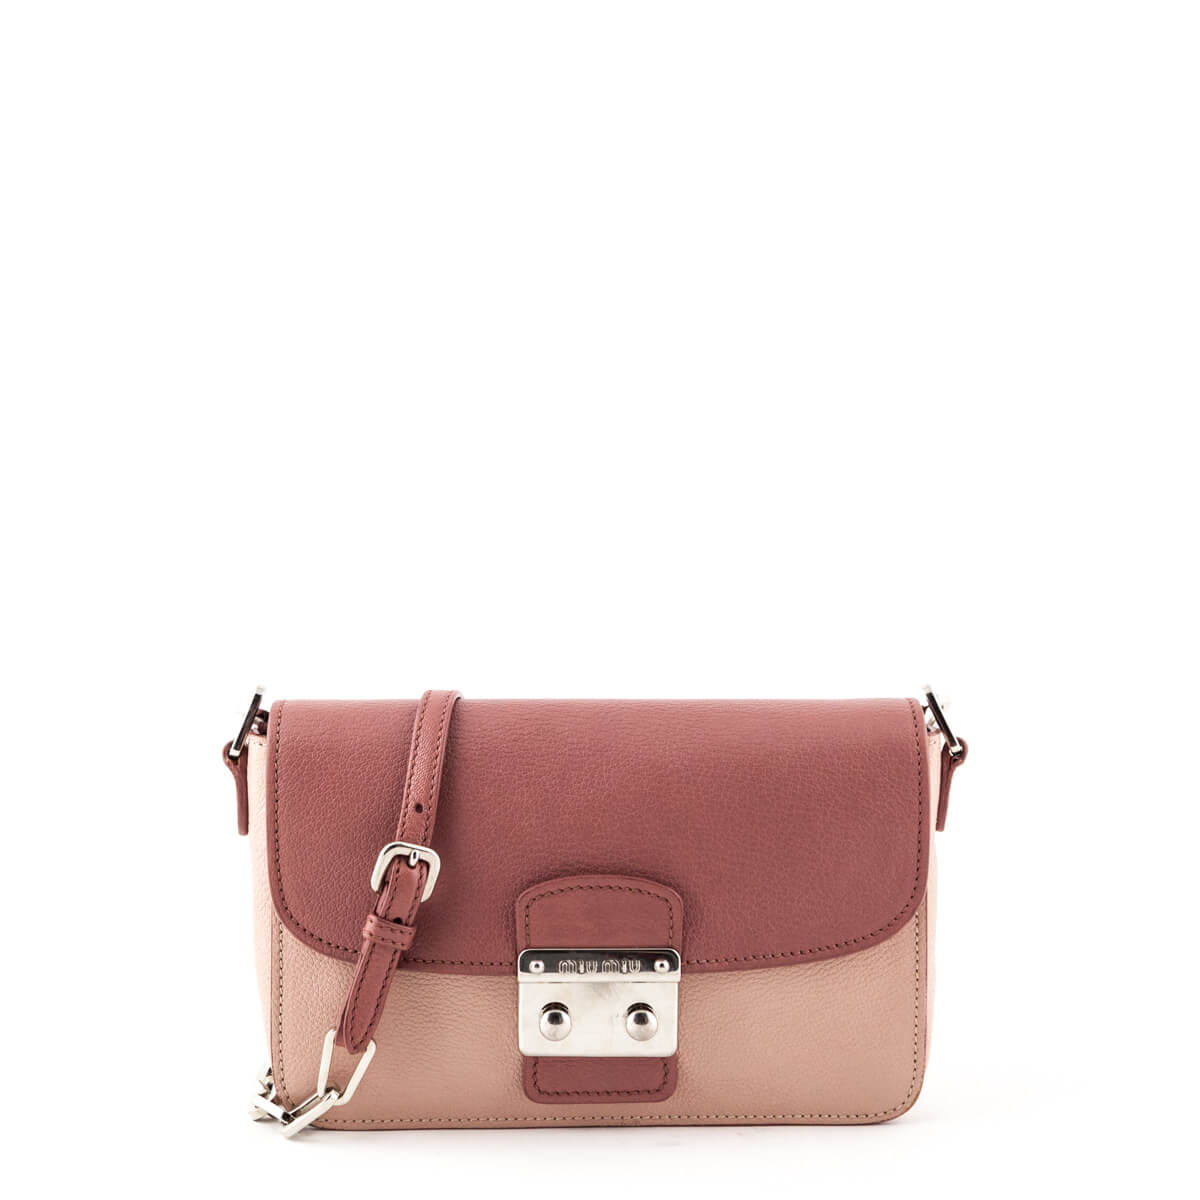 Miu Miu Pink Two-Tone Madras Shoulder Bag - LOVE that BAG - Preowned  Authentic ... 4ac58160b71b3